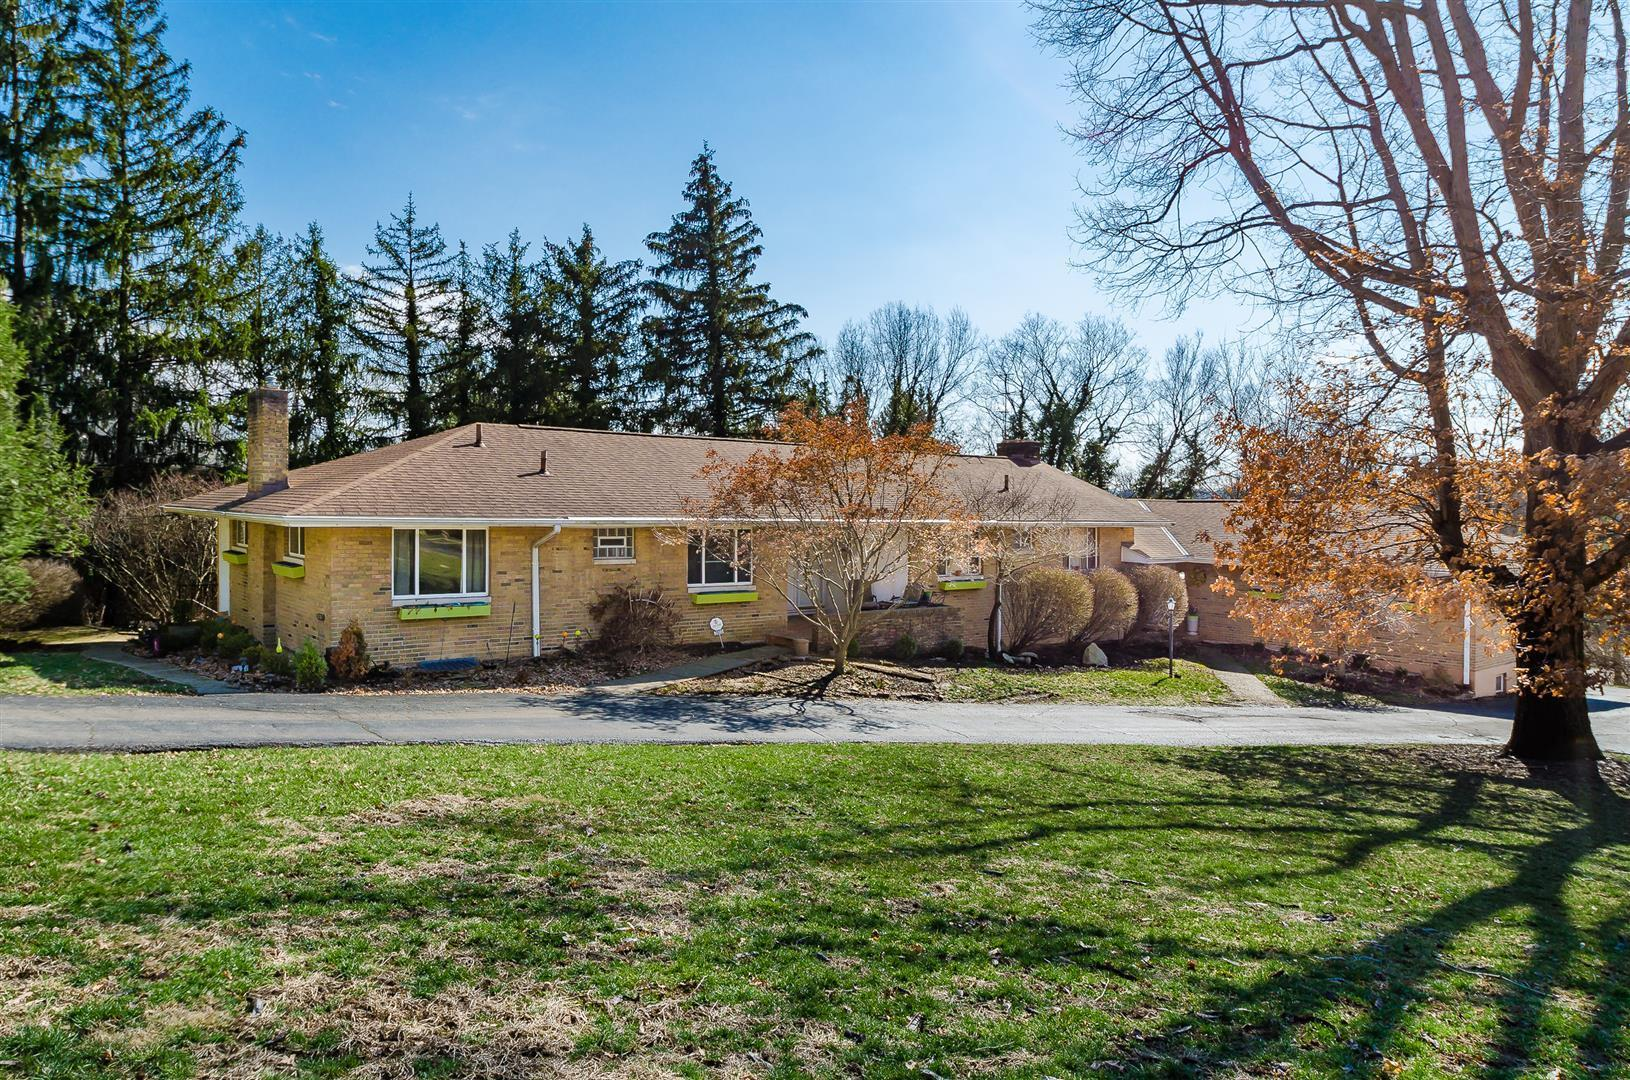 2623 Charing Road, Columbus, Ohio 43221, 2 Bedrooms Bedrooms, ,2 BathroomsBathrooms,Residential,For Sale,Charing,220006528